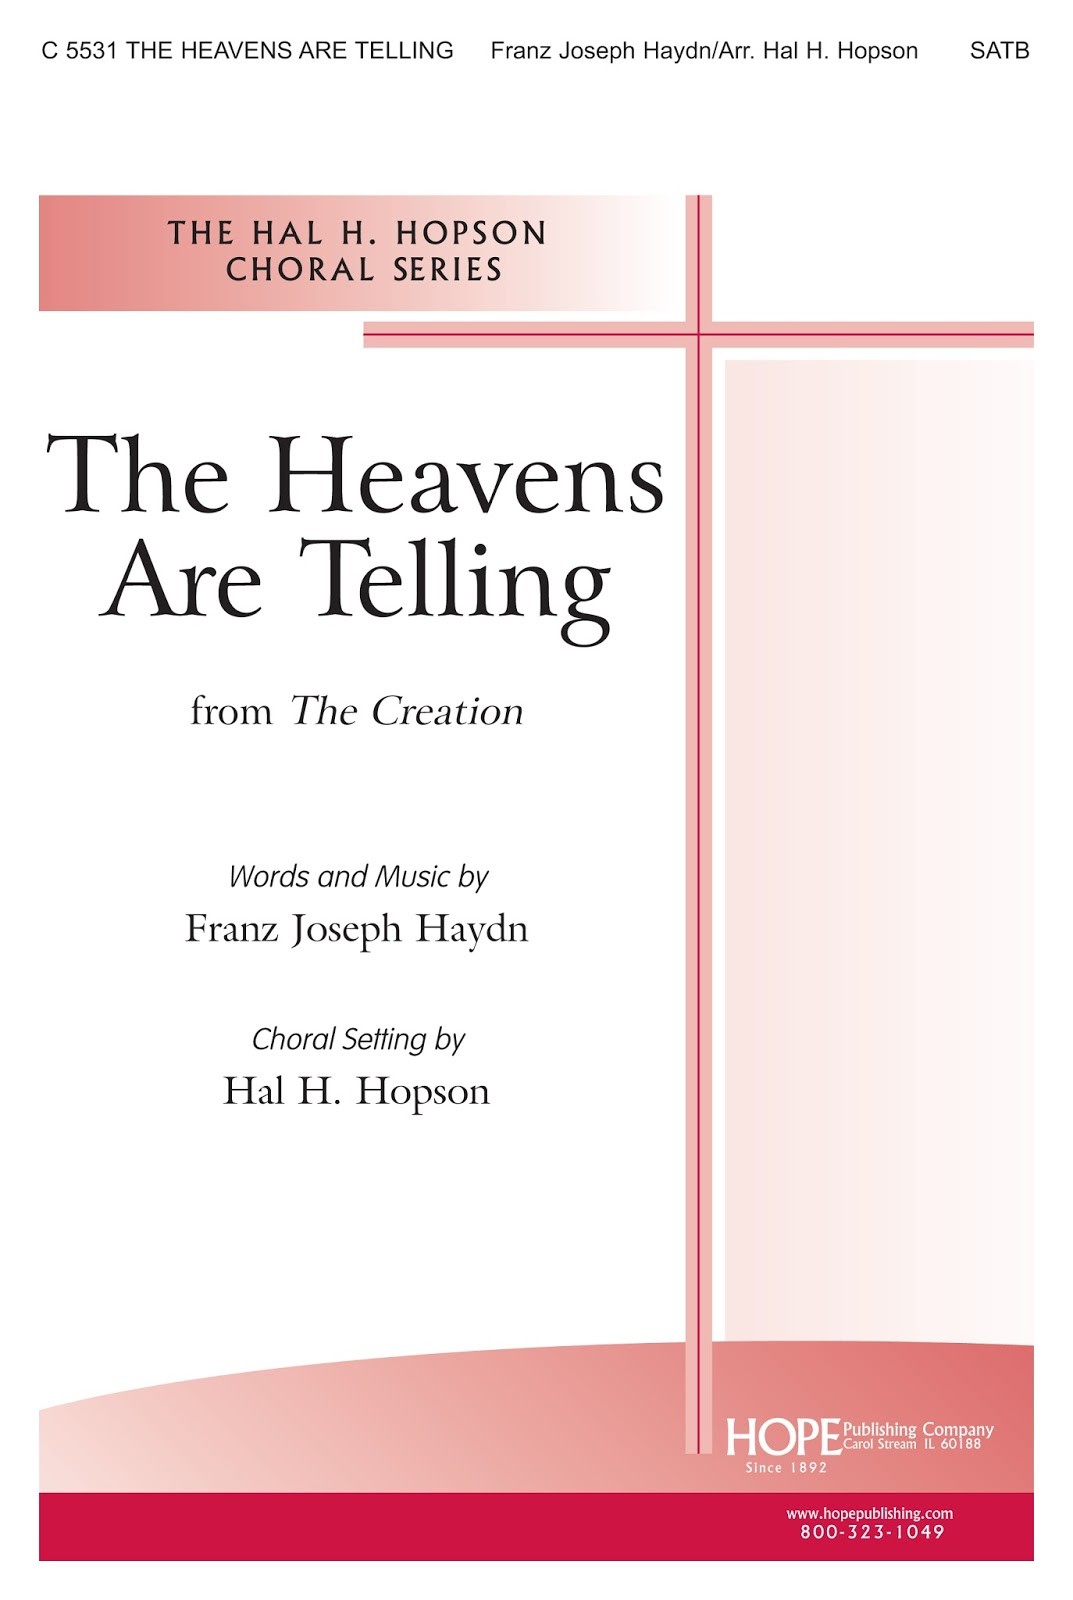 Download The Heavens Are Telling Music Sheet Note in PDF